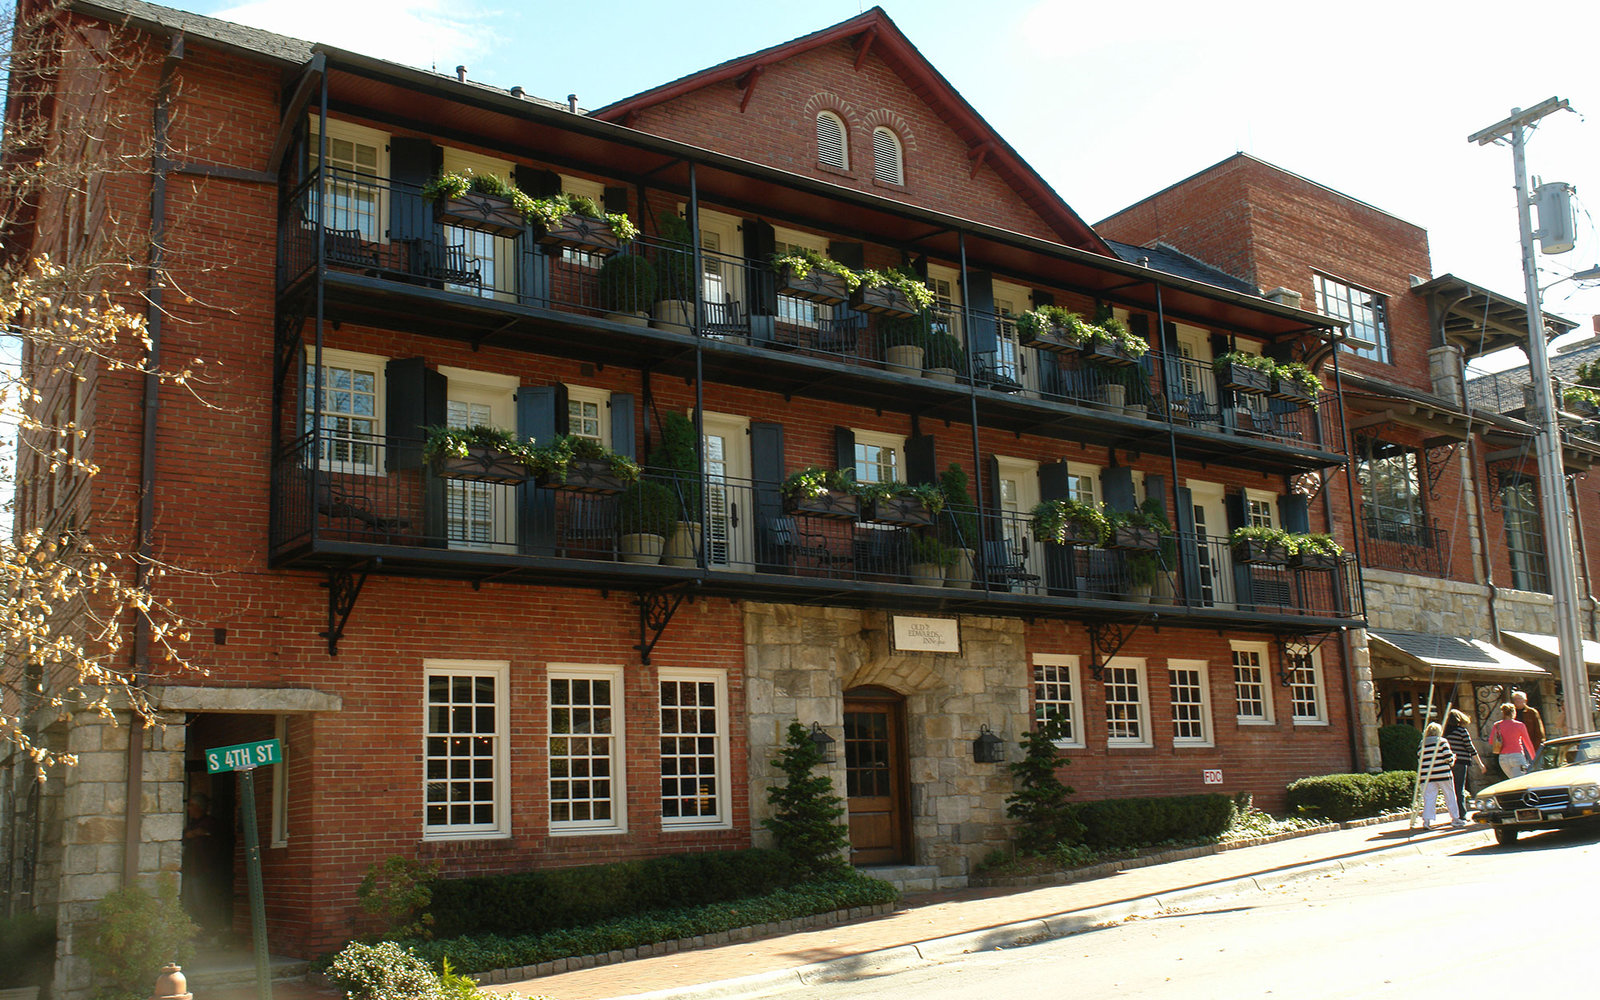 North Carolina: Old Edwards Inn & Spa